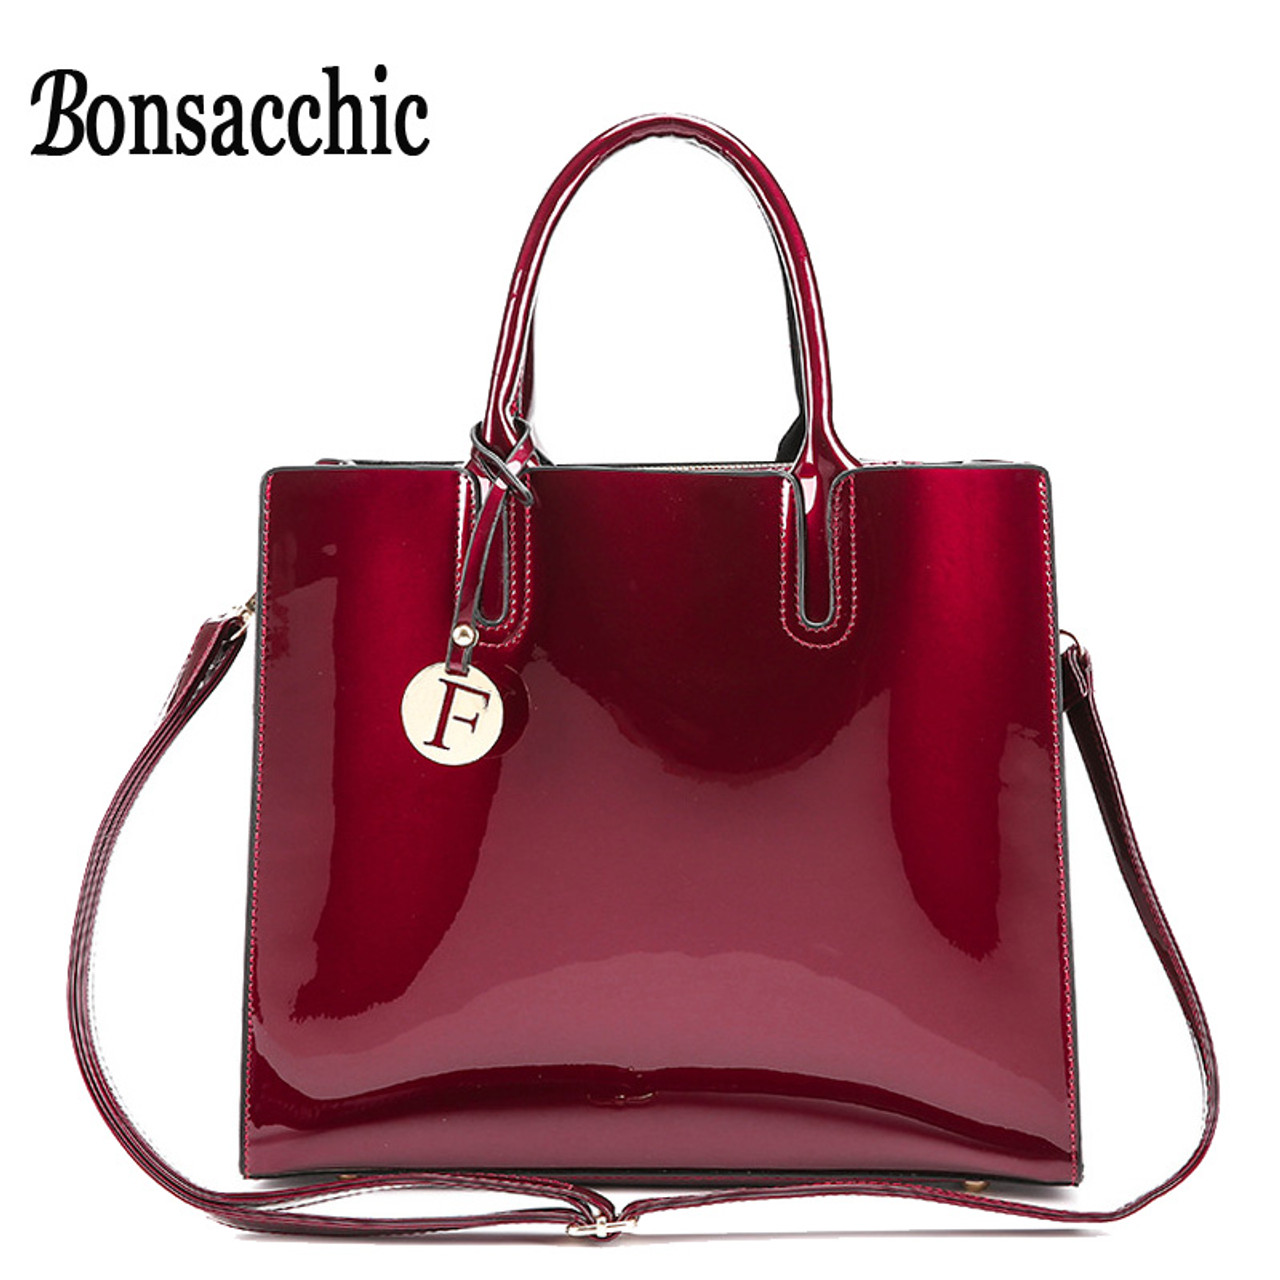 82fcce7047 Bonsacchic Red Patent Leather Tote Bag Handbags Women Famous Brands Lady s  Lacquered Bag Red Handbag for ...